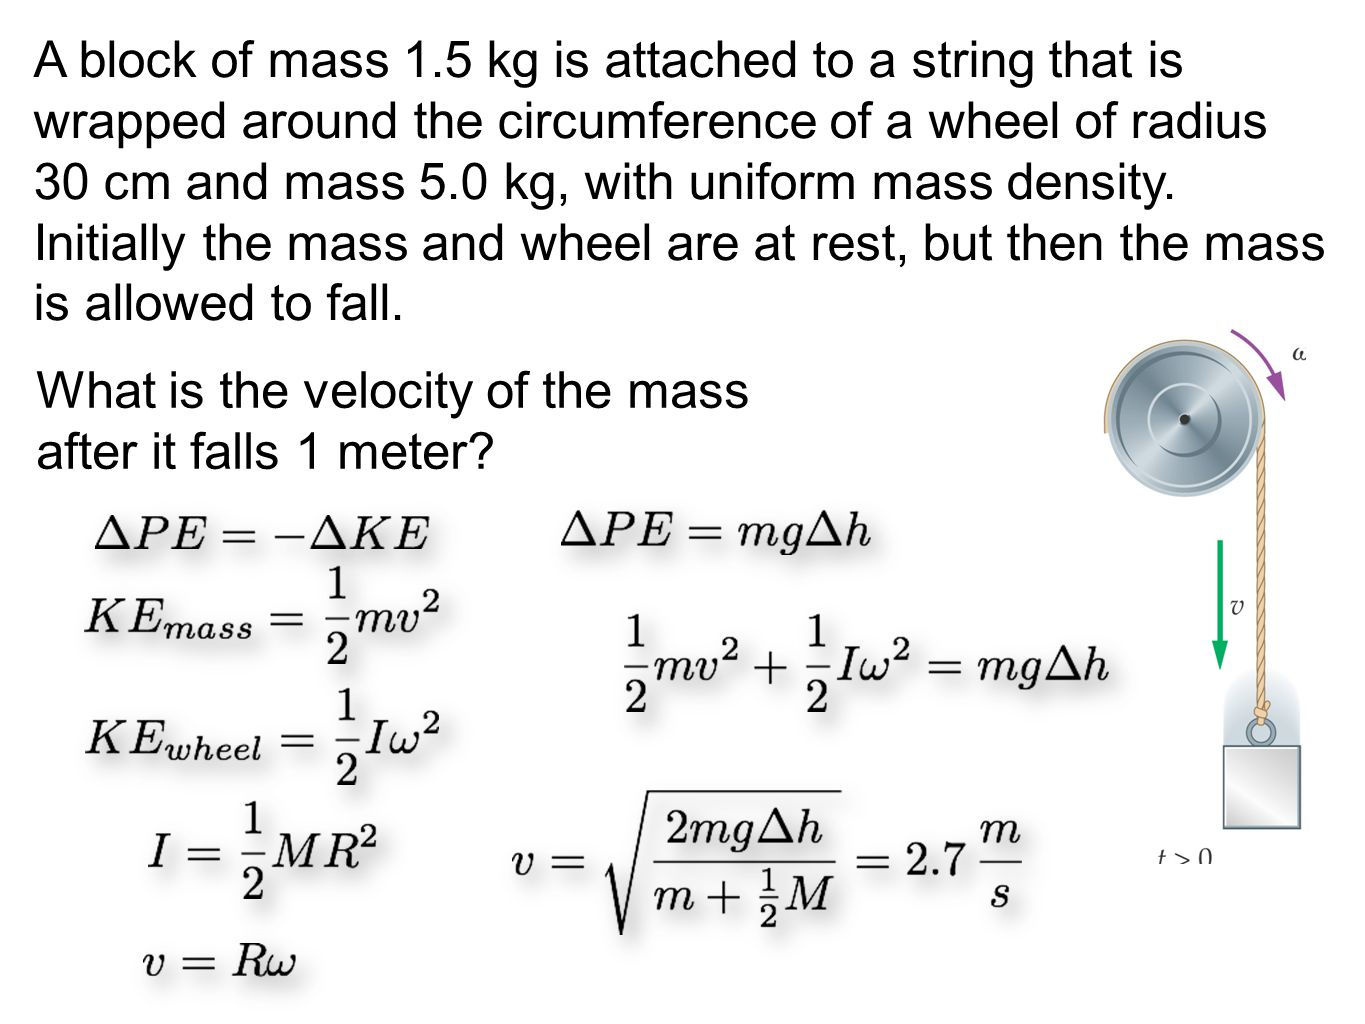 A block of mass 1.5 kg is attached to a string that is wrapped around the circumference of a wheel of radius 30 cm and mass 5.0 kg, with uniform mass density. Initially the mass and wheel are at rest, but then the mass is allowed to fall.